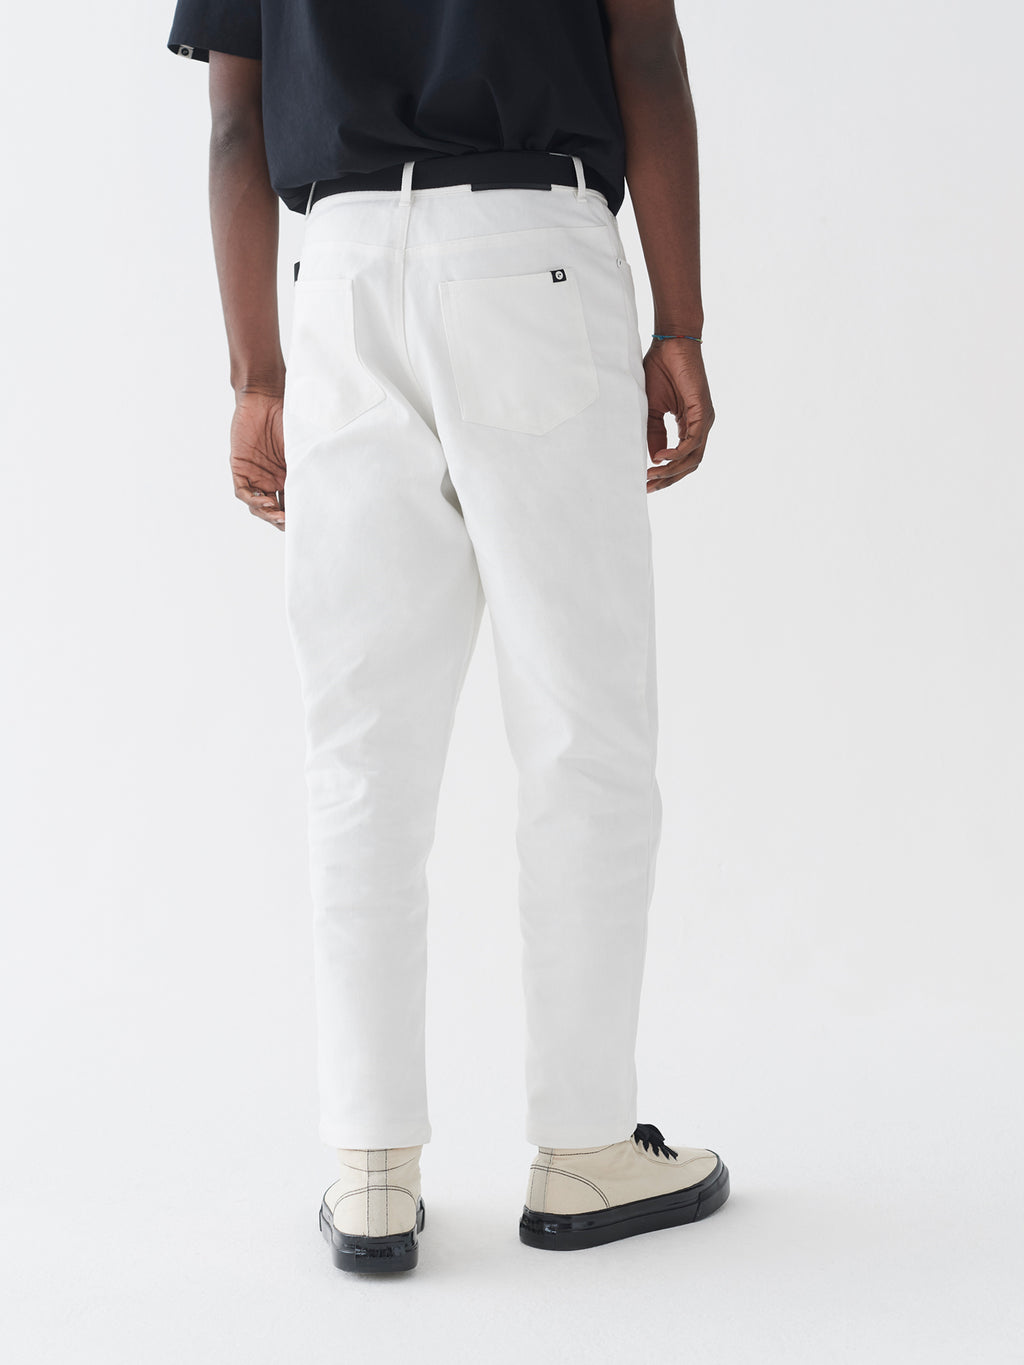 LO Mom Jeans - Off White